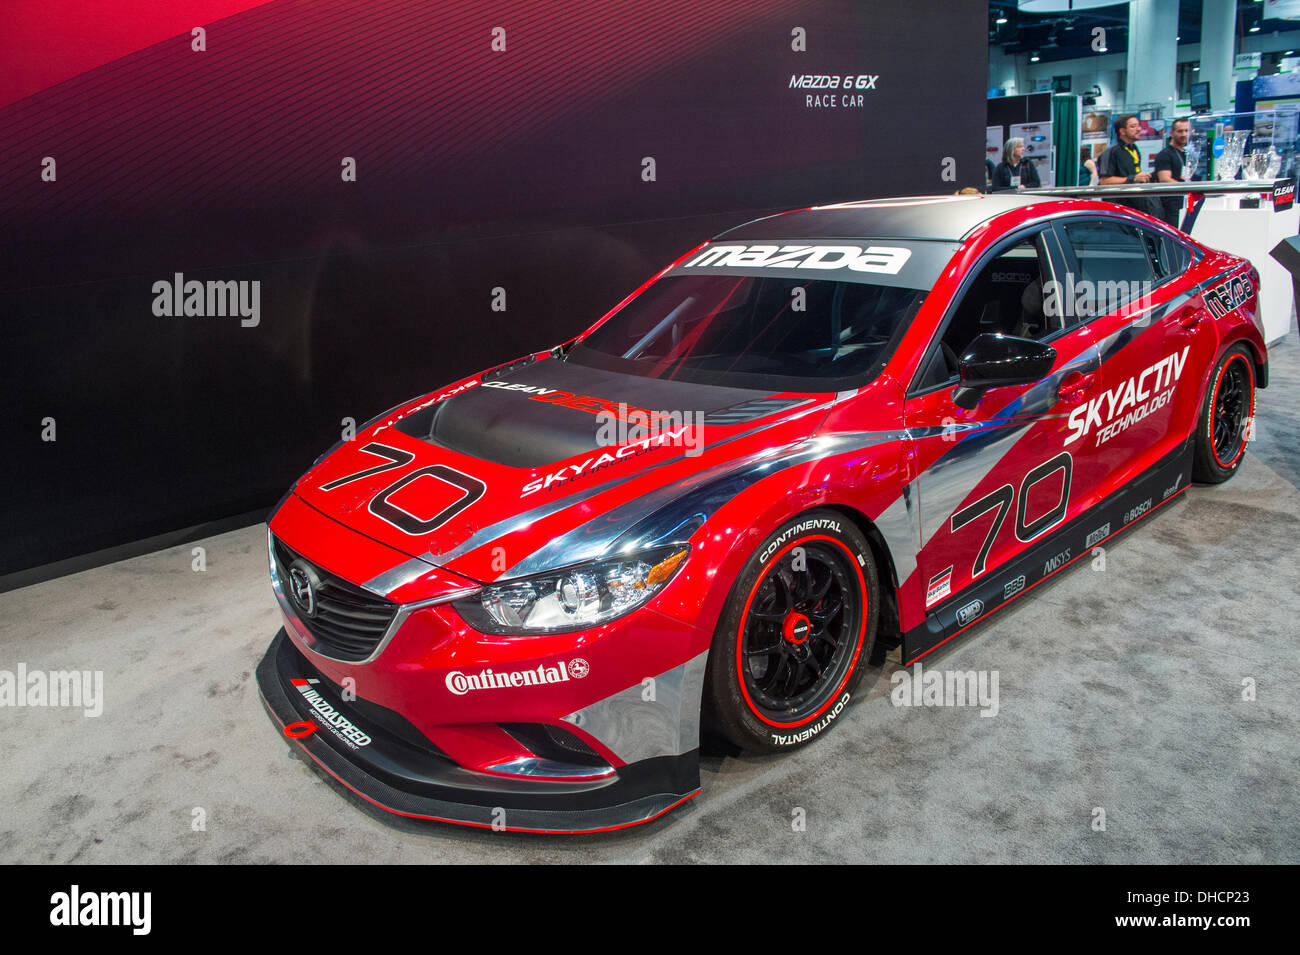 Las Vegas Nevada Usa 5th November 2013 Mazda 6 Gx Race Car At